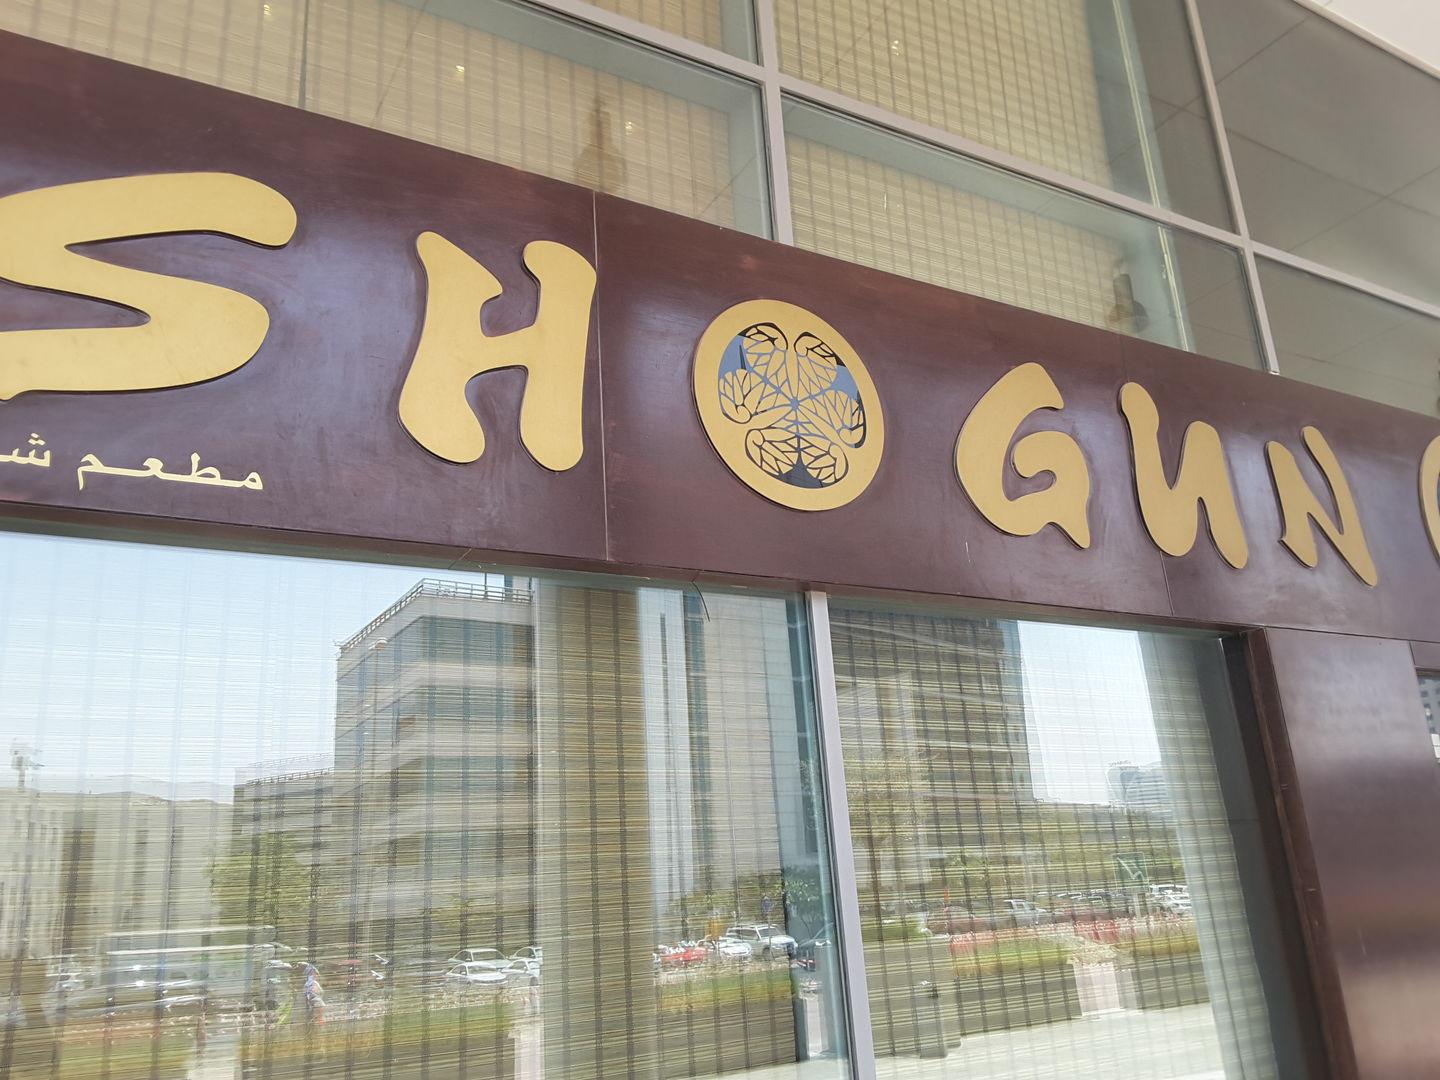 HiDubai-business-shogun-restaurant-food-beverage-restaurants-bars-dubai-media-city-al-sufouh-2-dubai-2